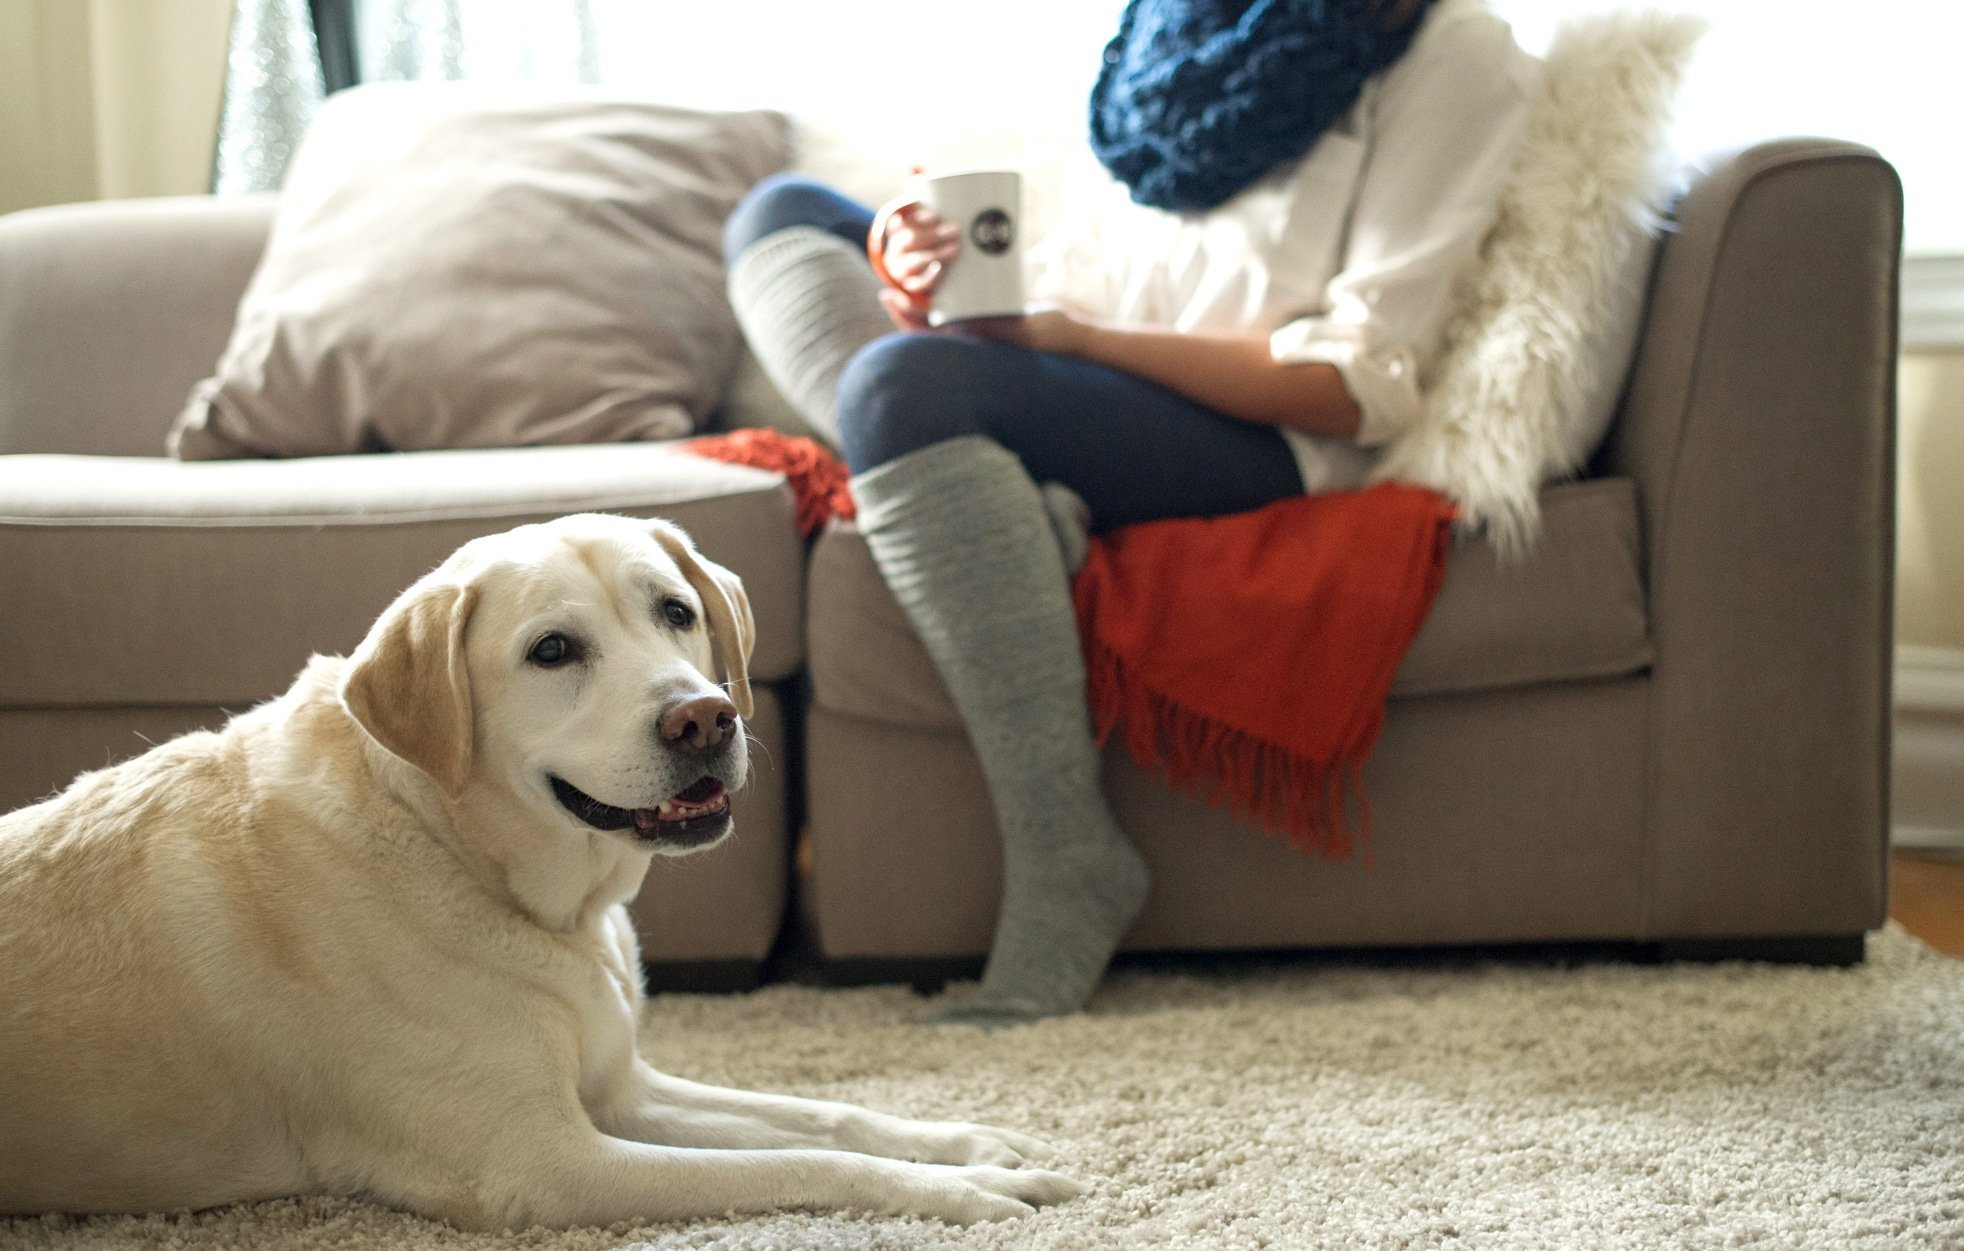 Meghan Gumer Lab and Girl on Couch with Coffee 2 - Celebrate A Man's Best Friend On National Dog Day With A Cup of Coffee